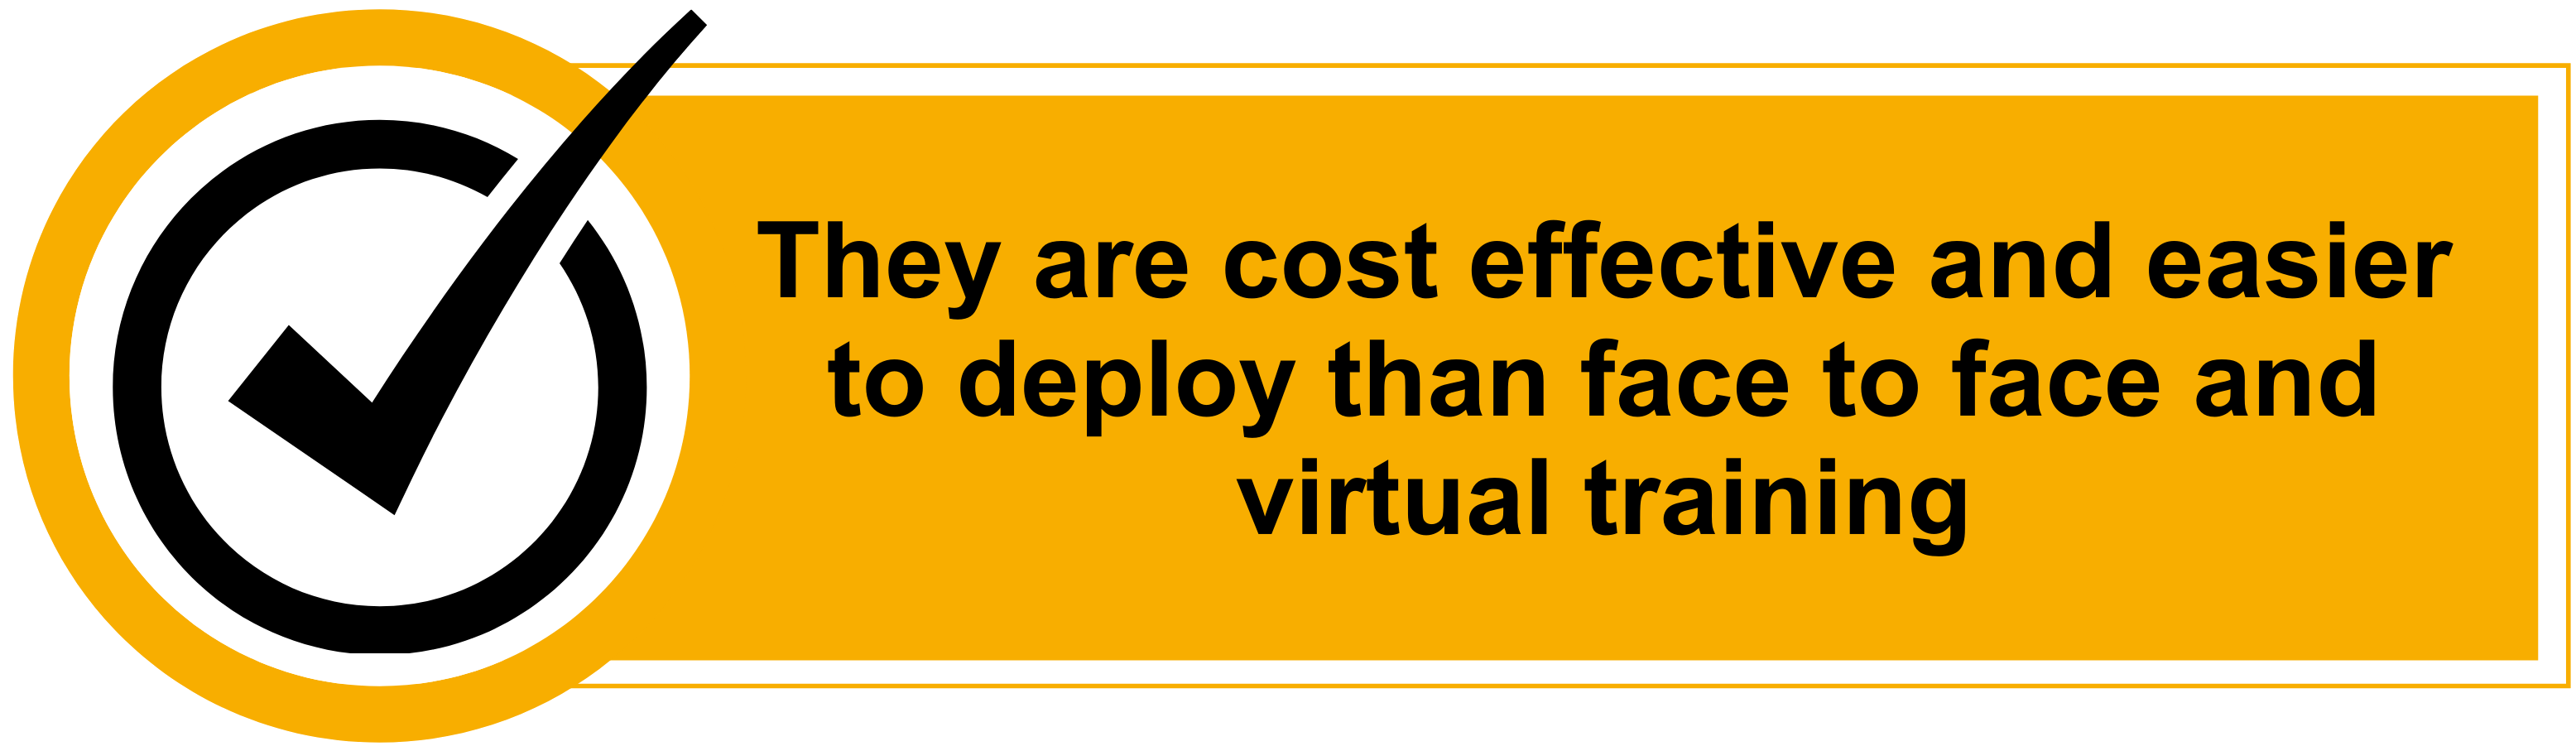 They are cost effective and easier to deploy than face to face and virtual training